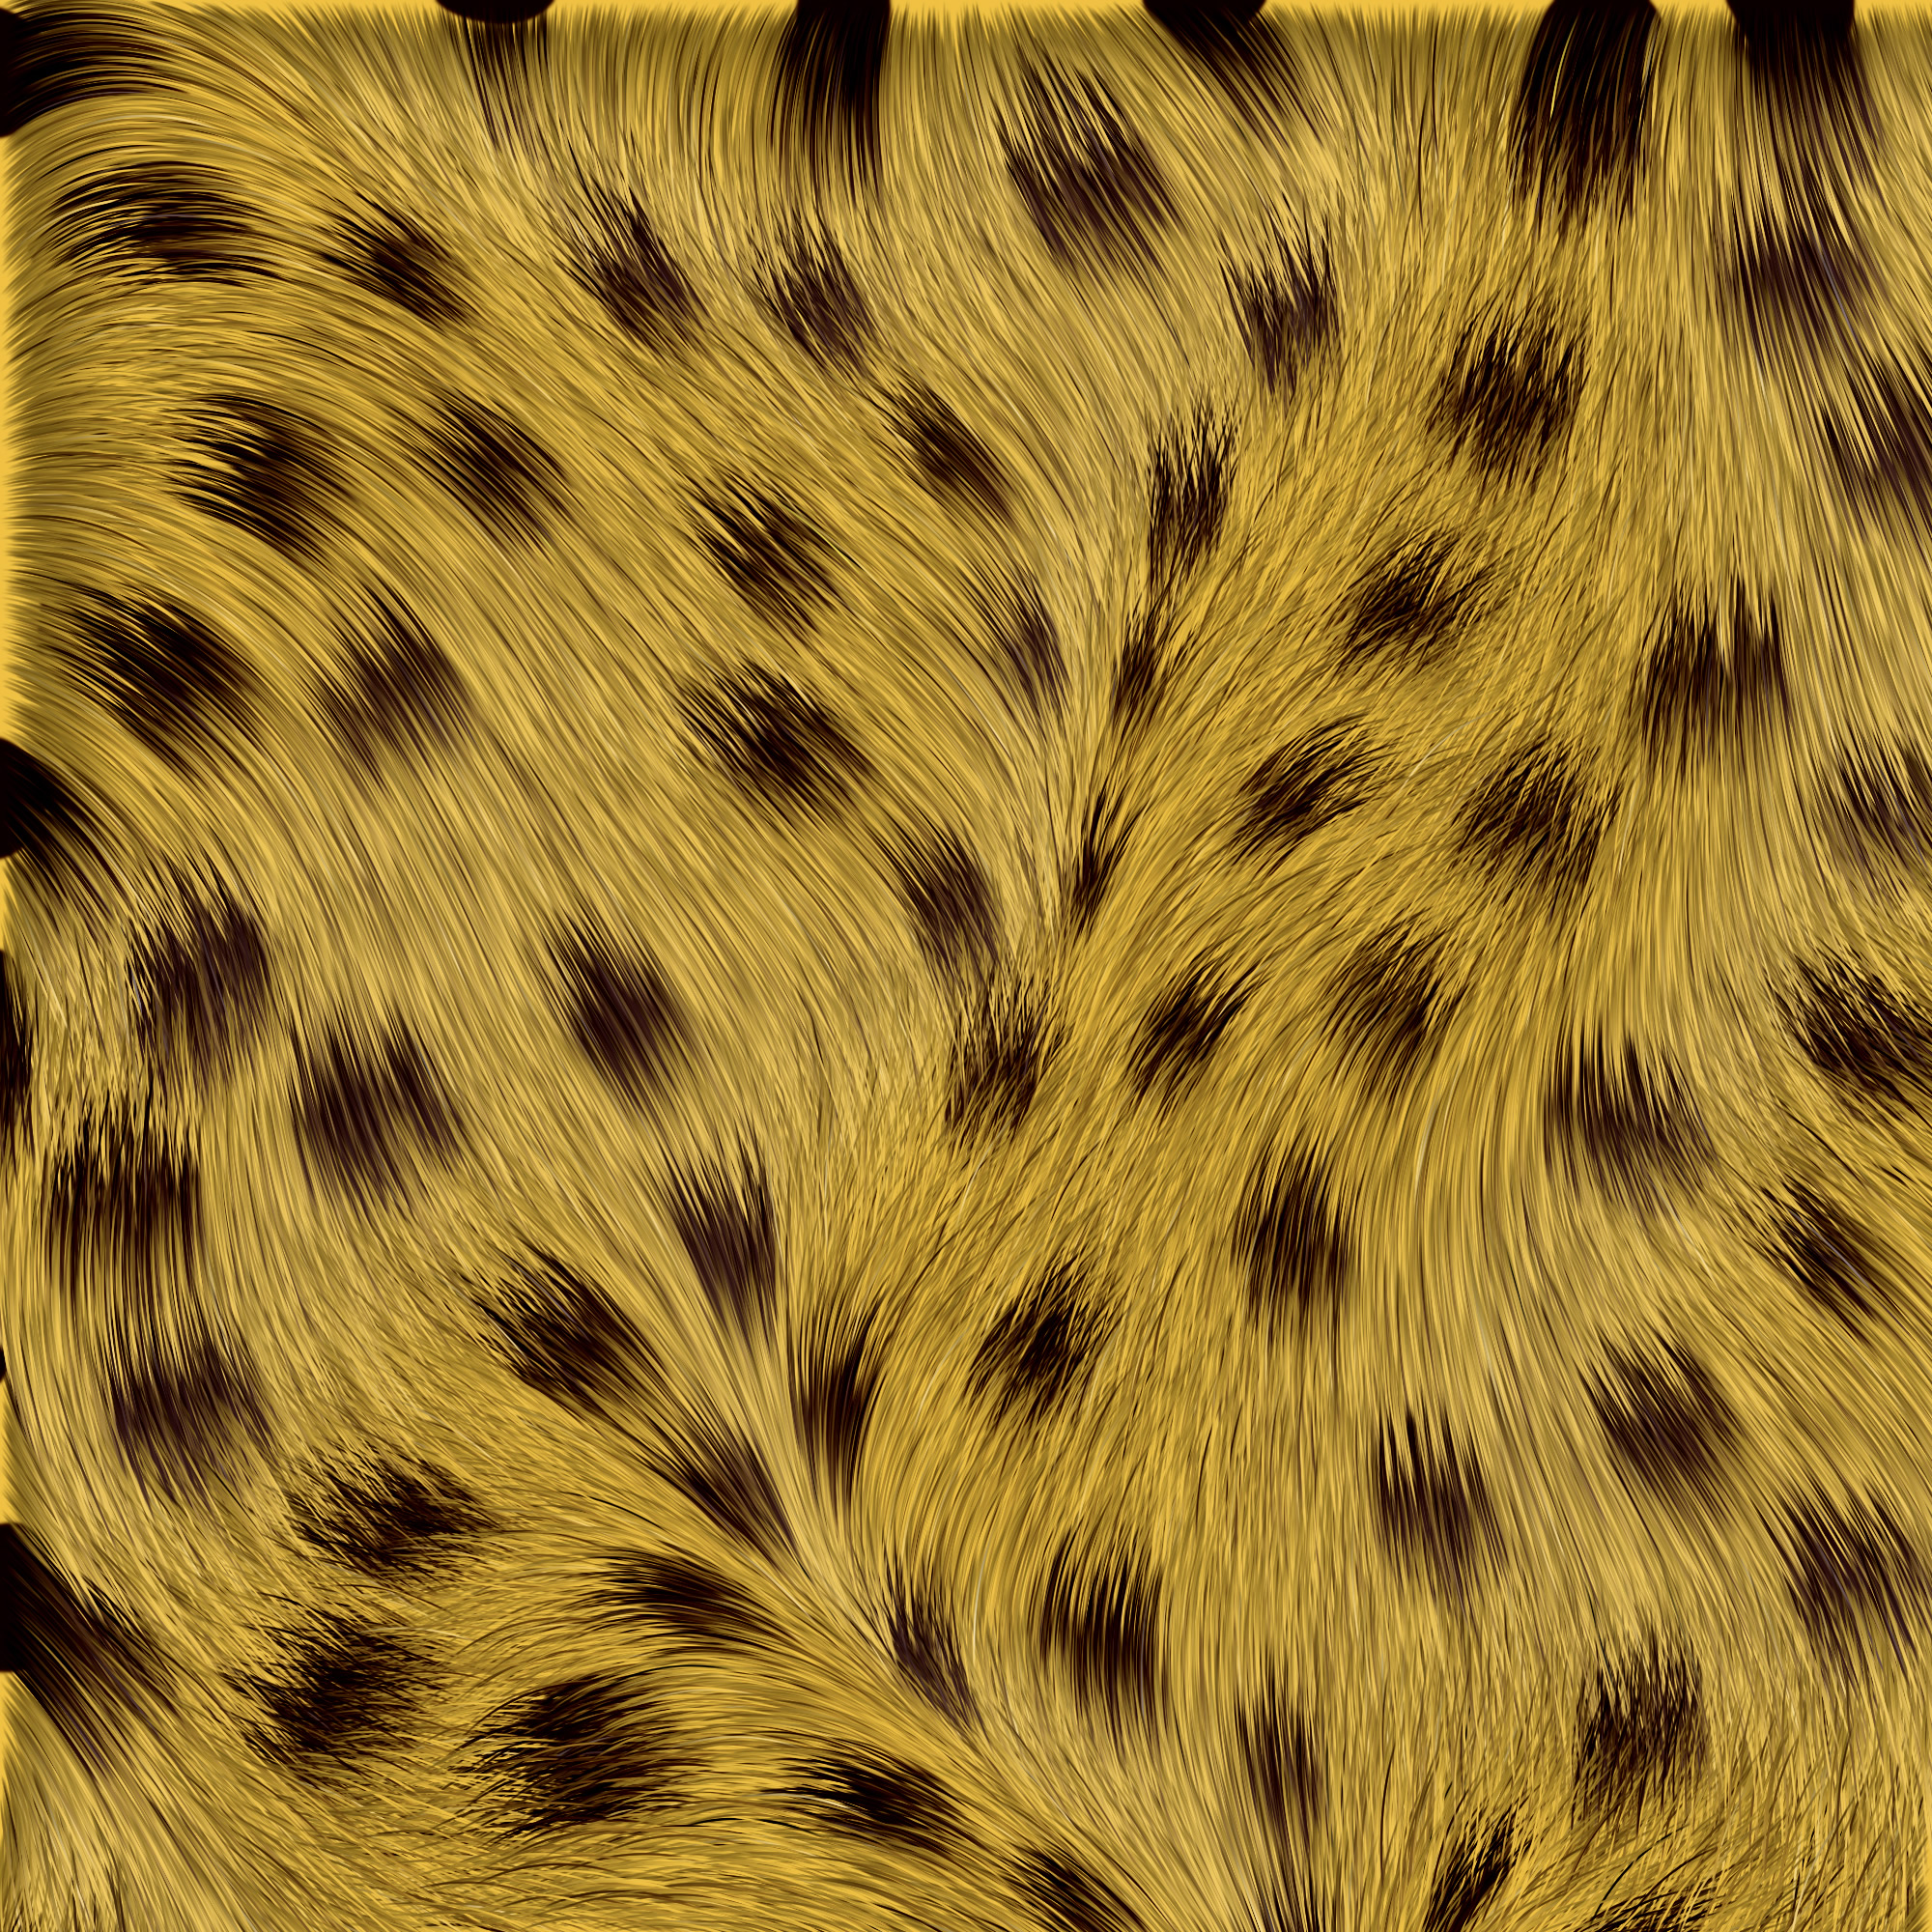 leopard, animal texture, background, skin animal texture, background